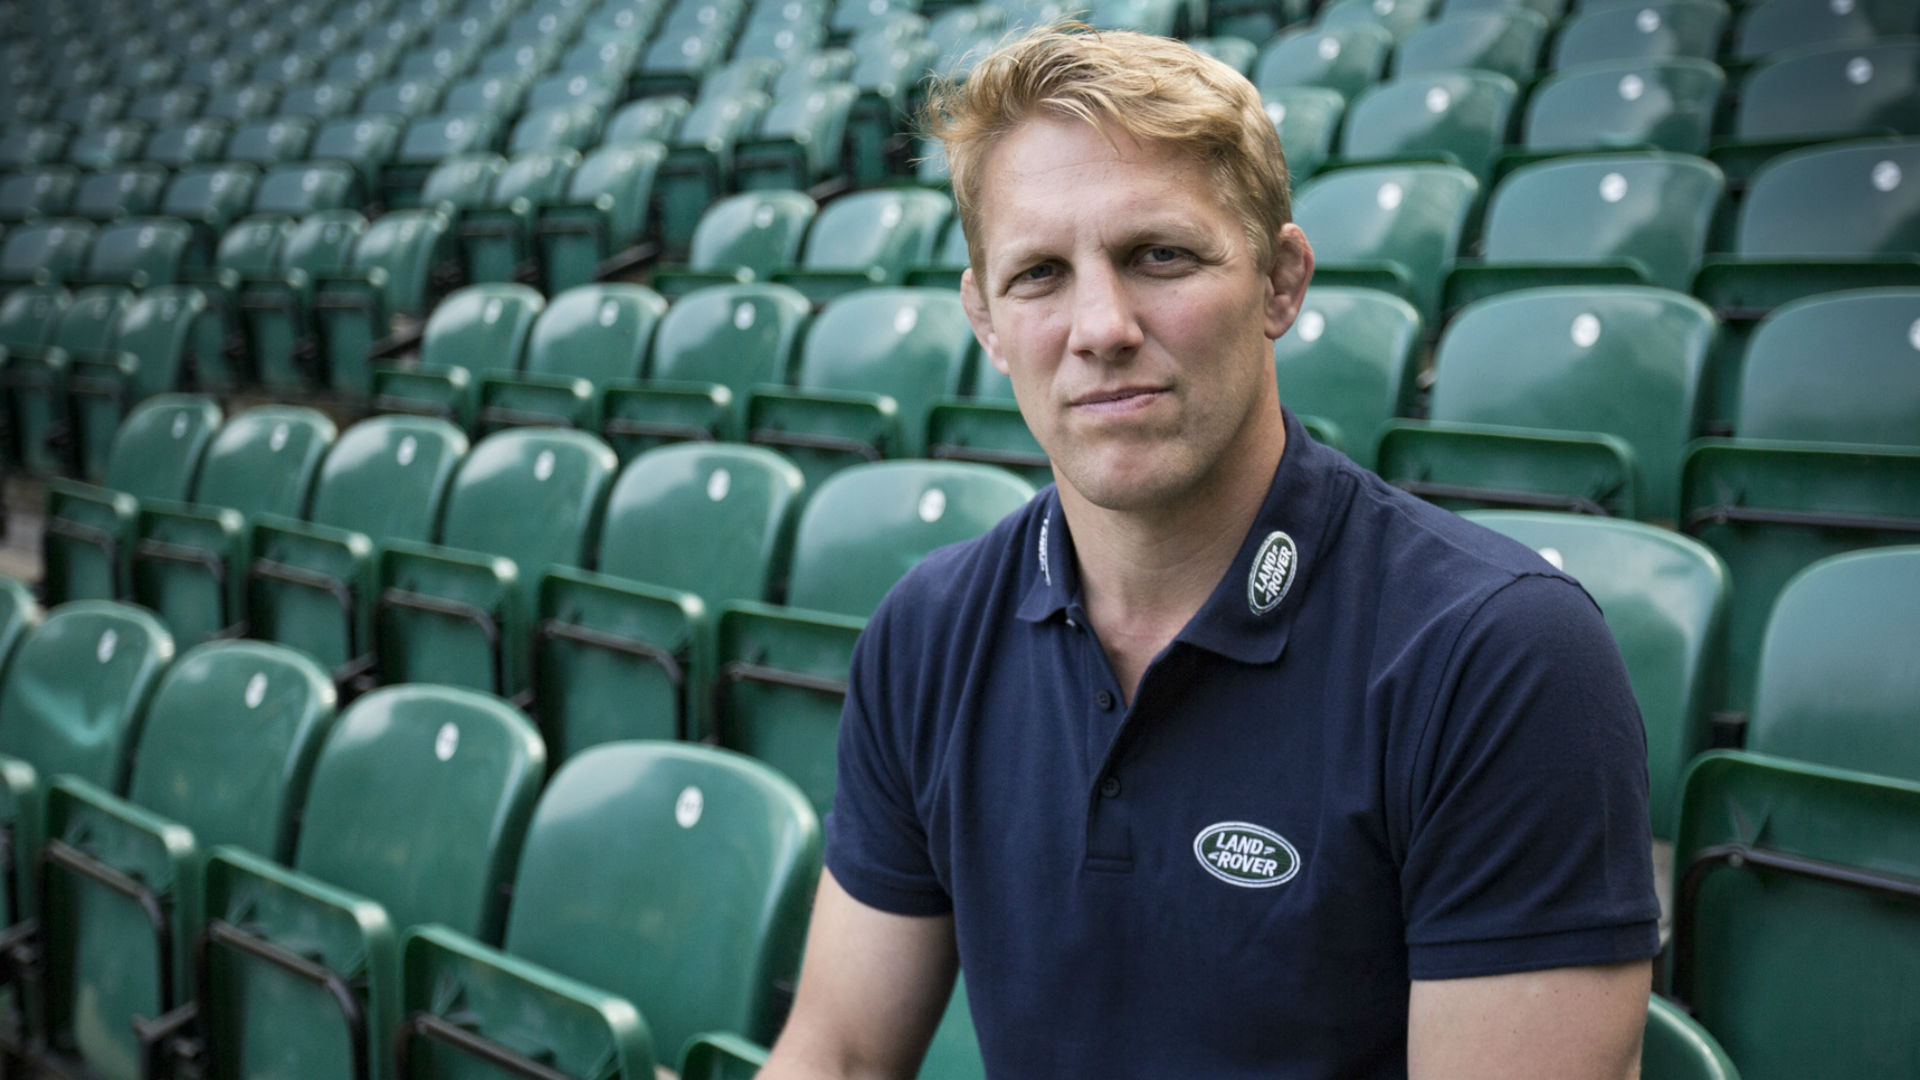 Rugby World Cup 2019: Creevy's England boring jibe could backfire - Moody